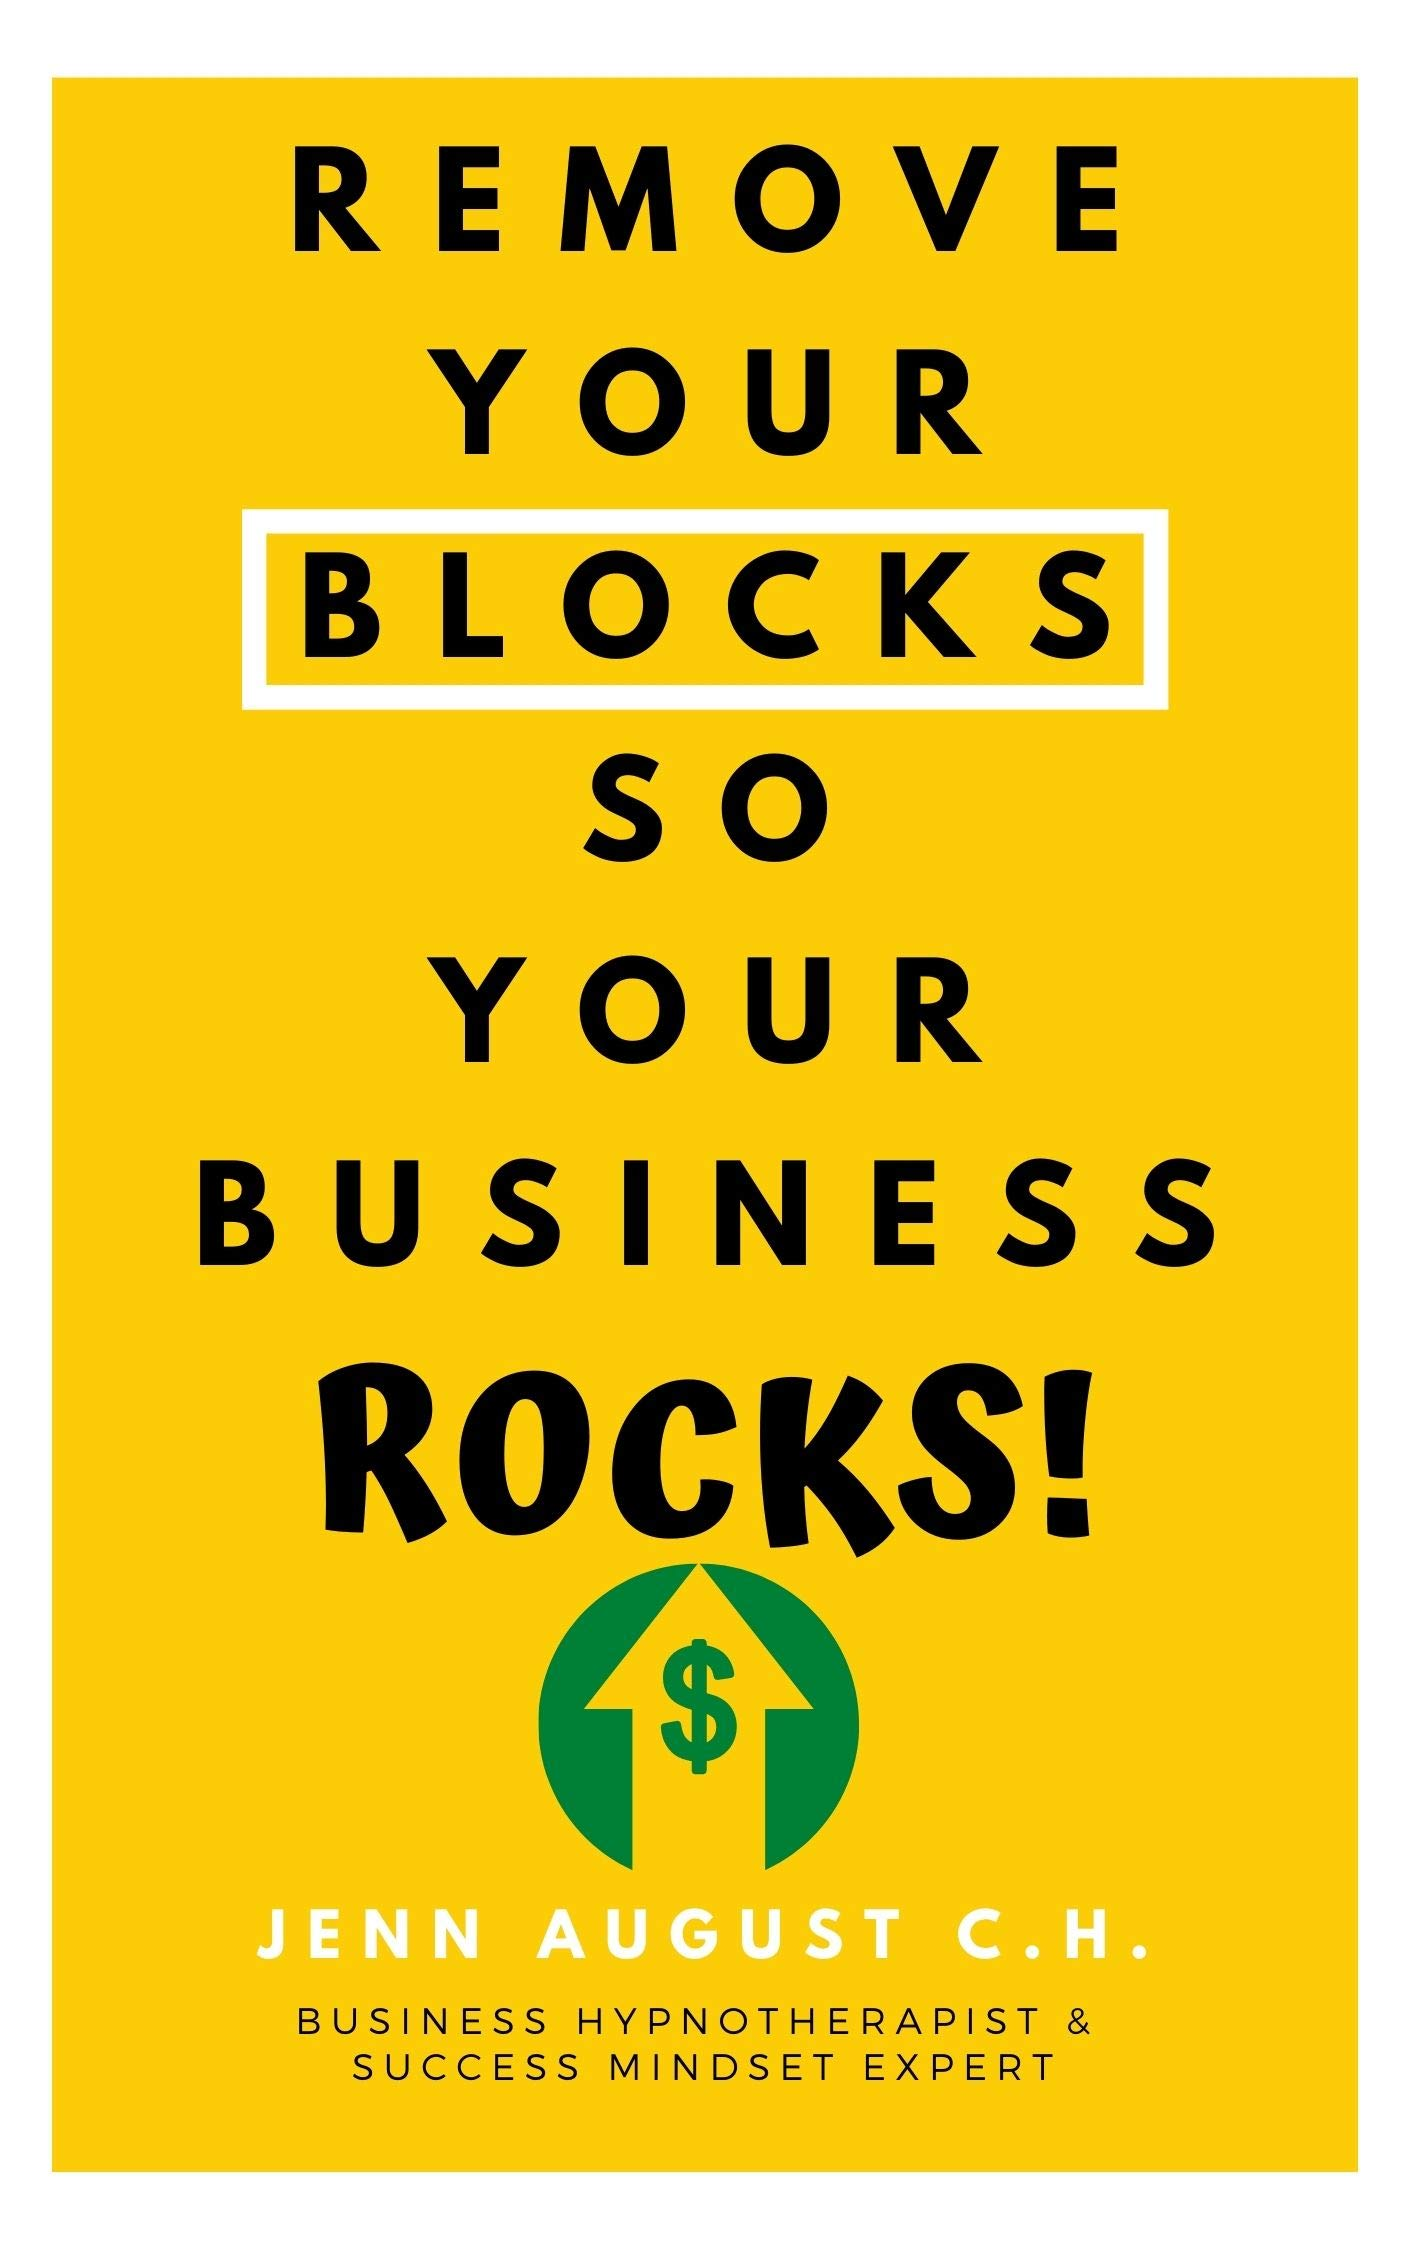 Remove Your Blocks So Your Business Rocks